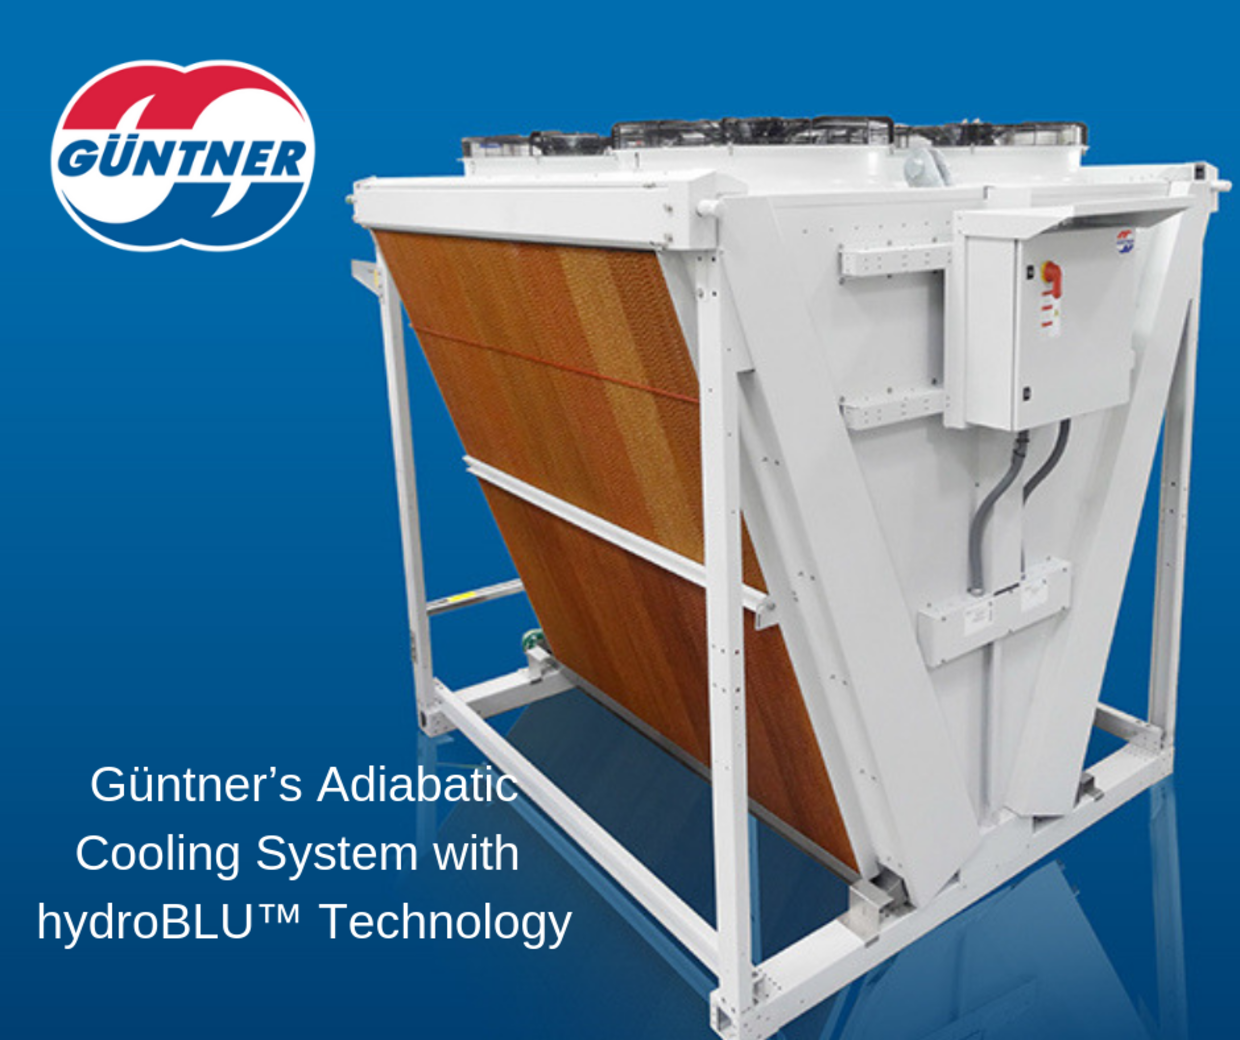 Güntner's Adiabatic Cooling System with hydroBLU™ Technology